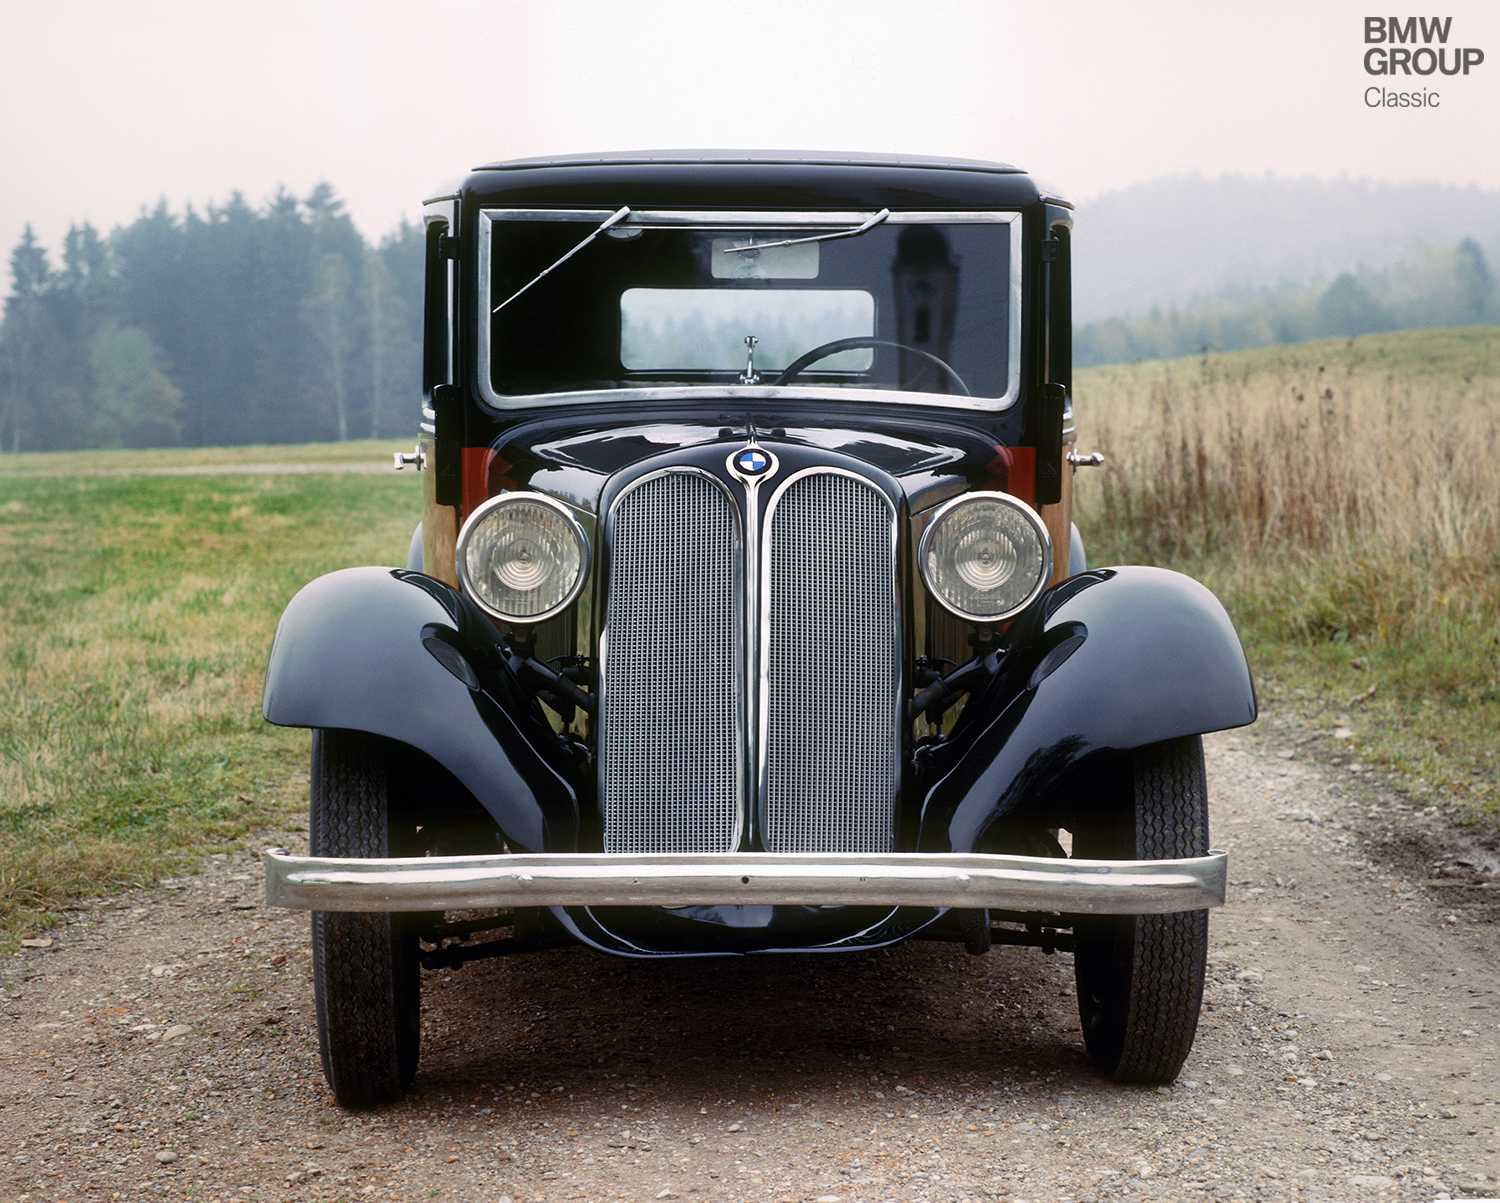 Six cylinders and, for the first time, the characteristic kidney-shape grille. In a number of respects, the BMW 303 was a pioneer for the BMW brand.